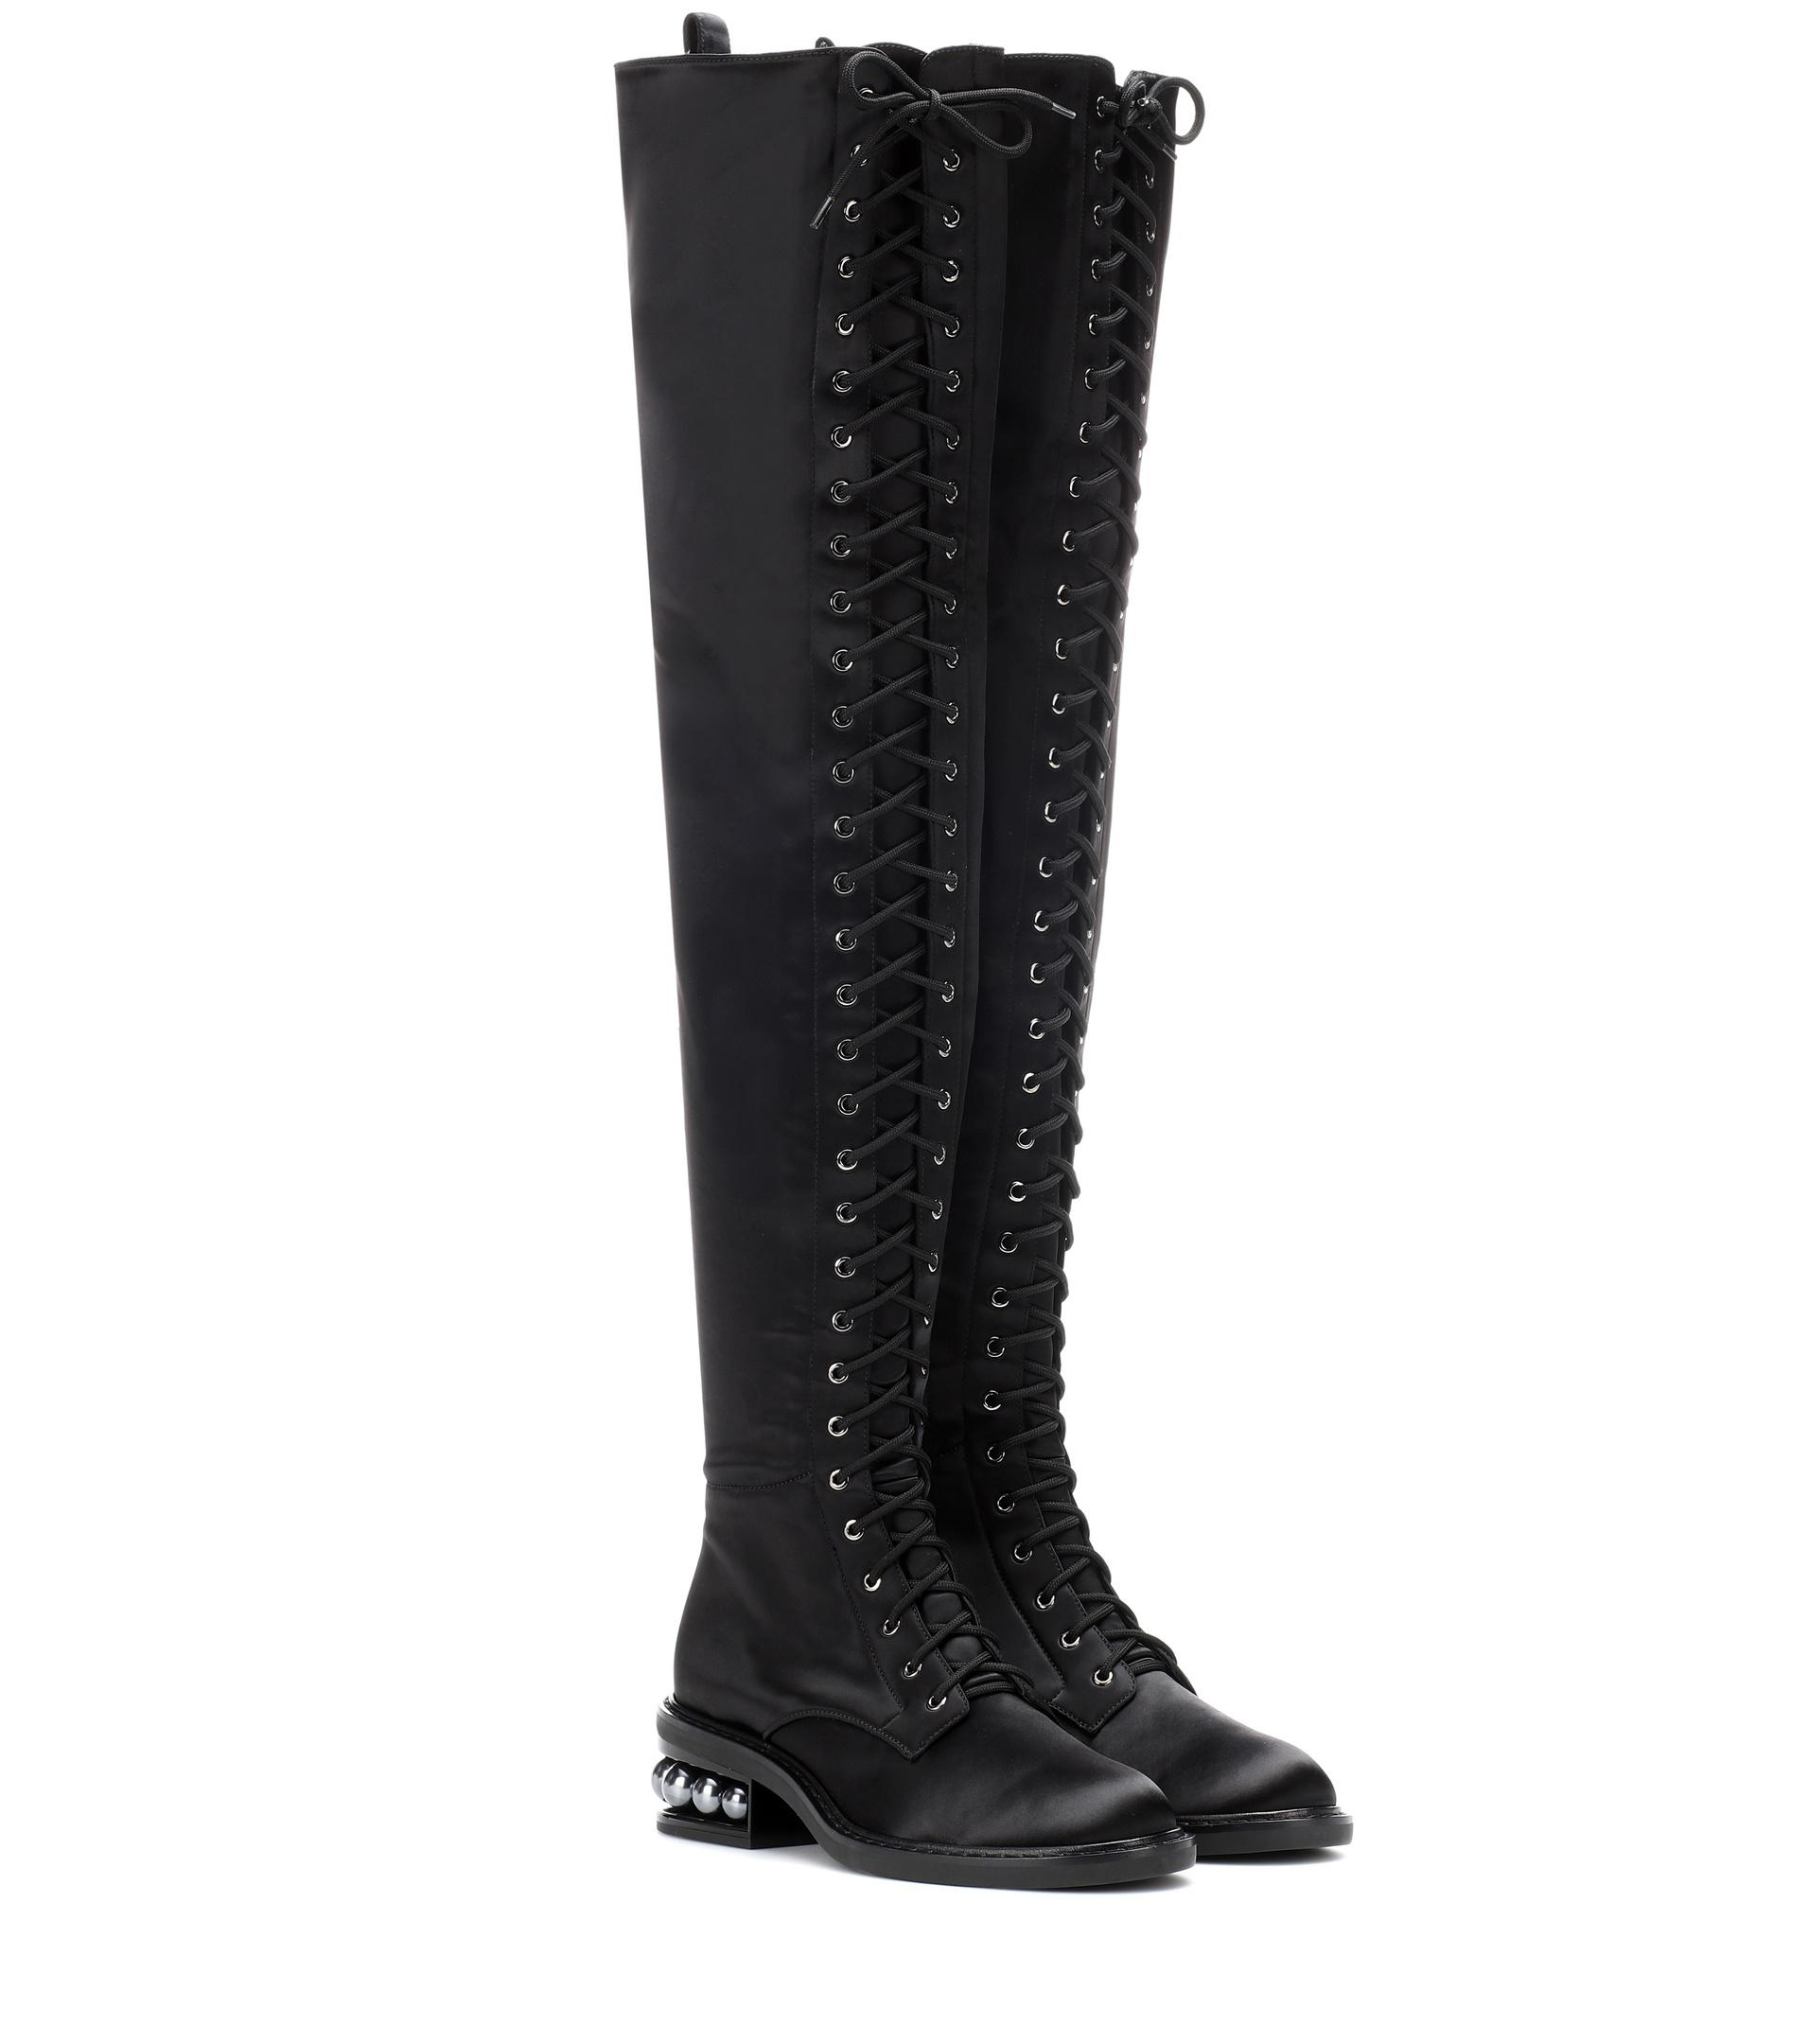 4fbb3be7376 Lyst - Nicholas Kirkwood Casati Satin Over-the-knee Boots in Black